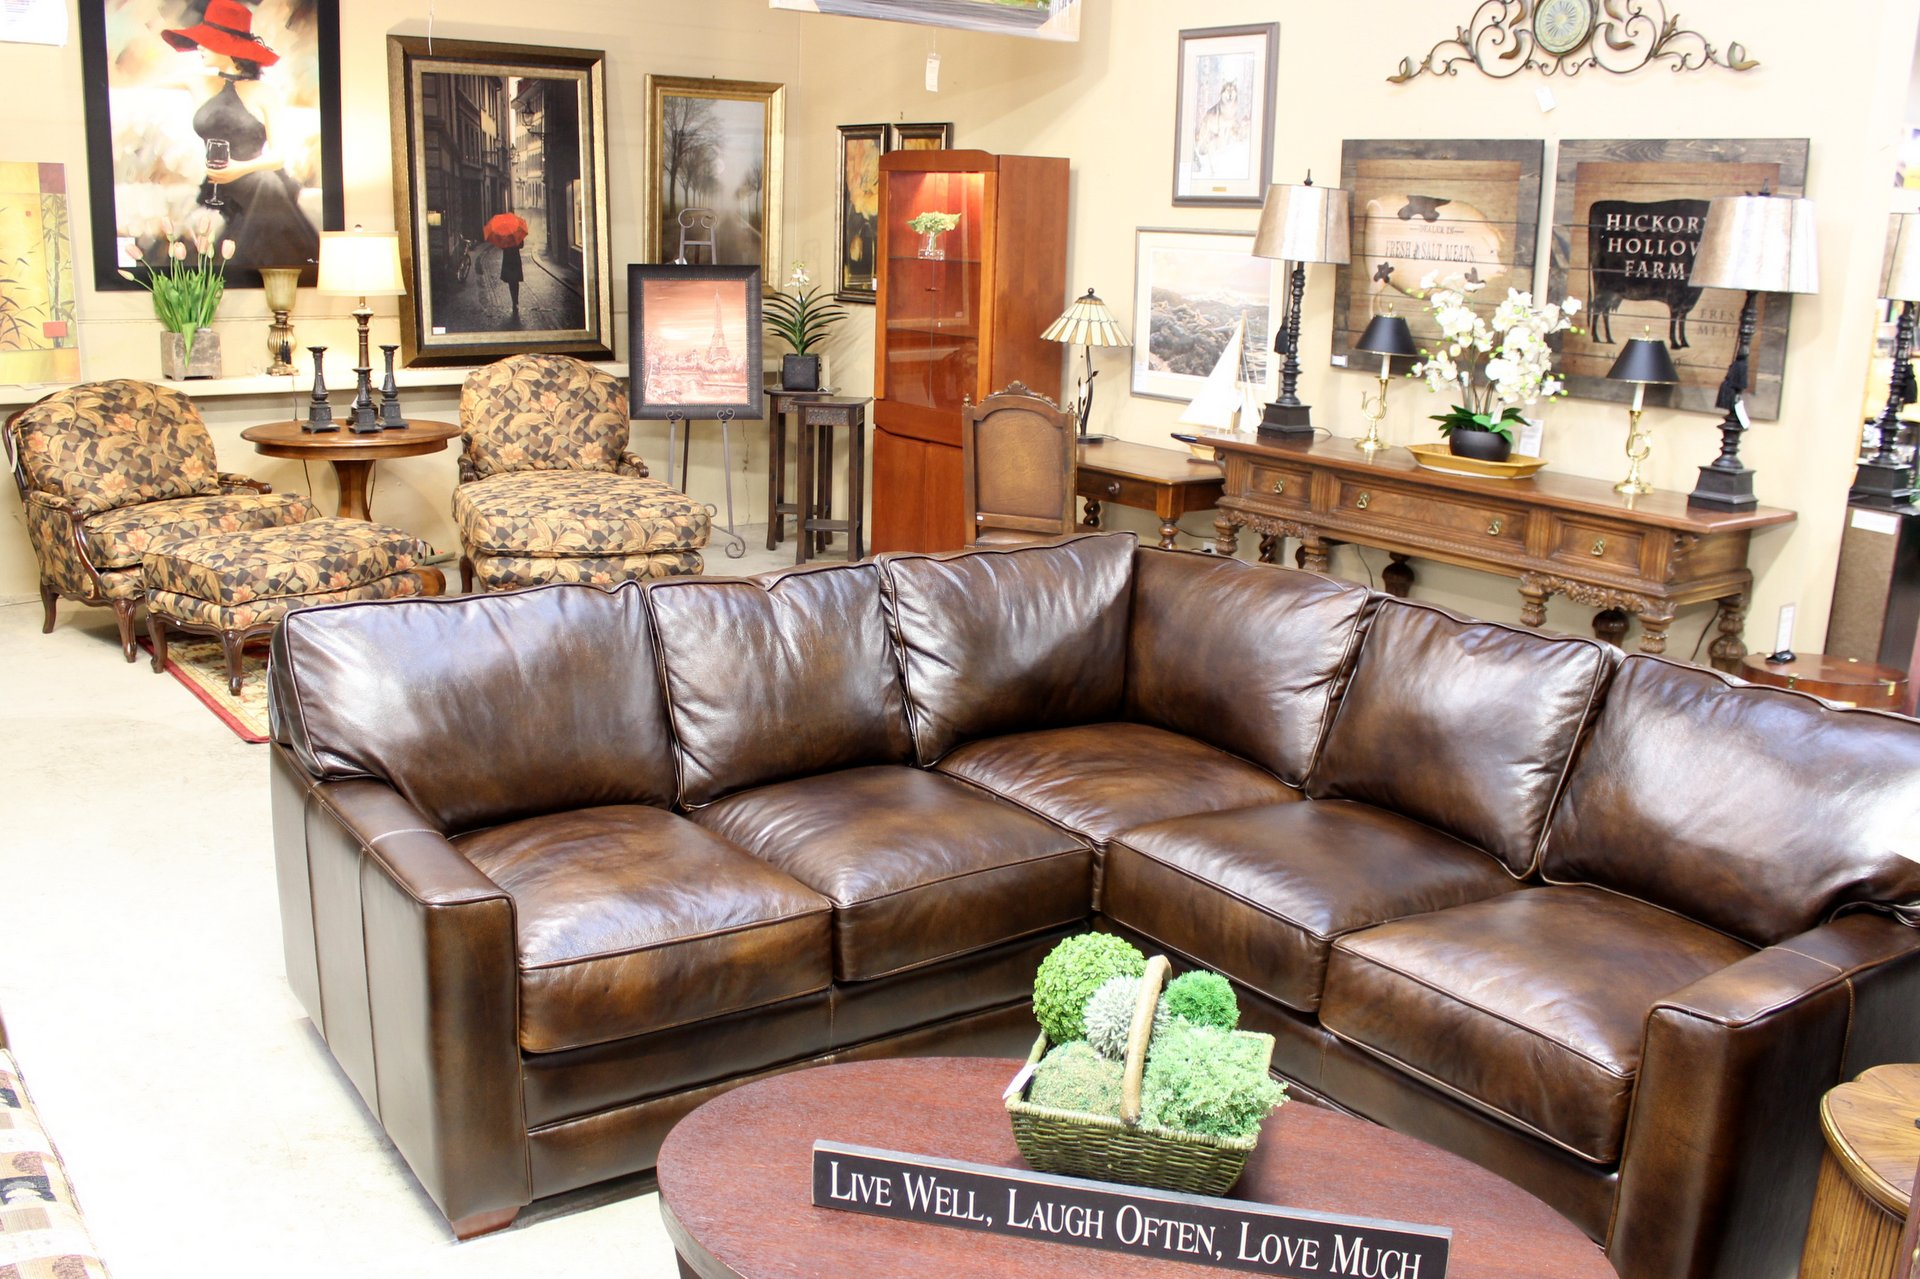 Save 40-80% on Quality Like-New Furnishings 128d404be9